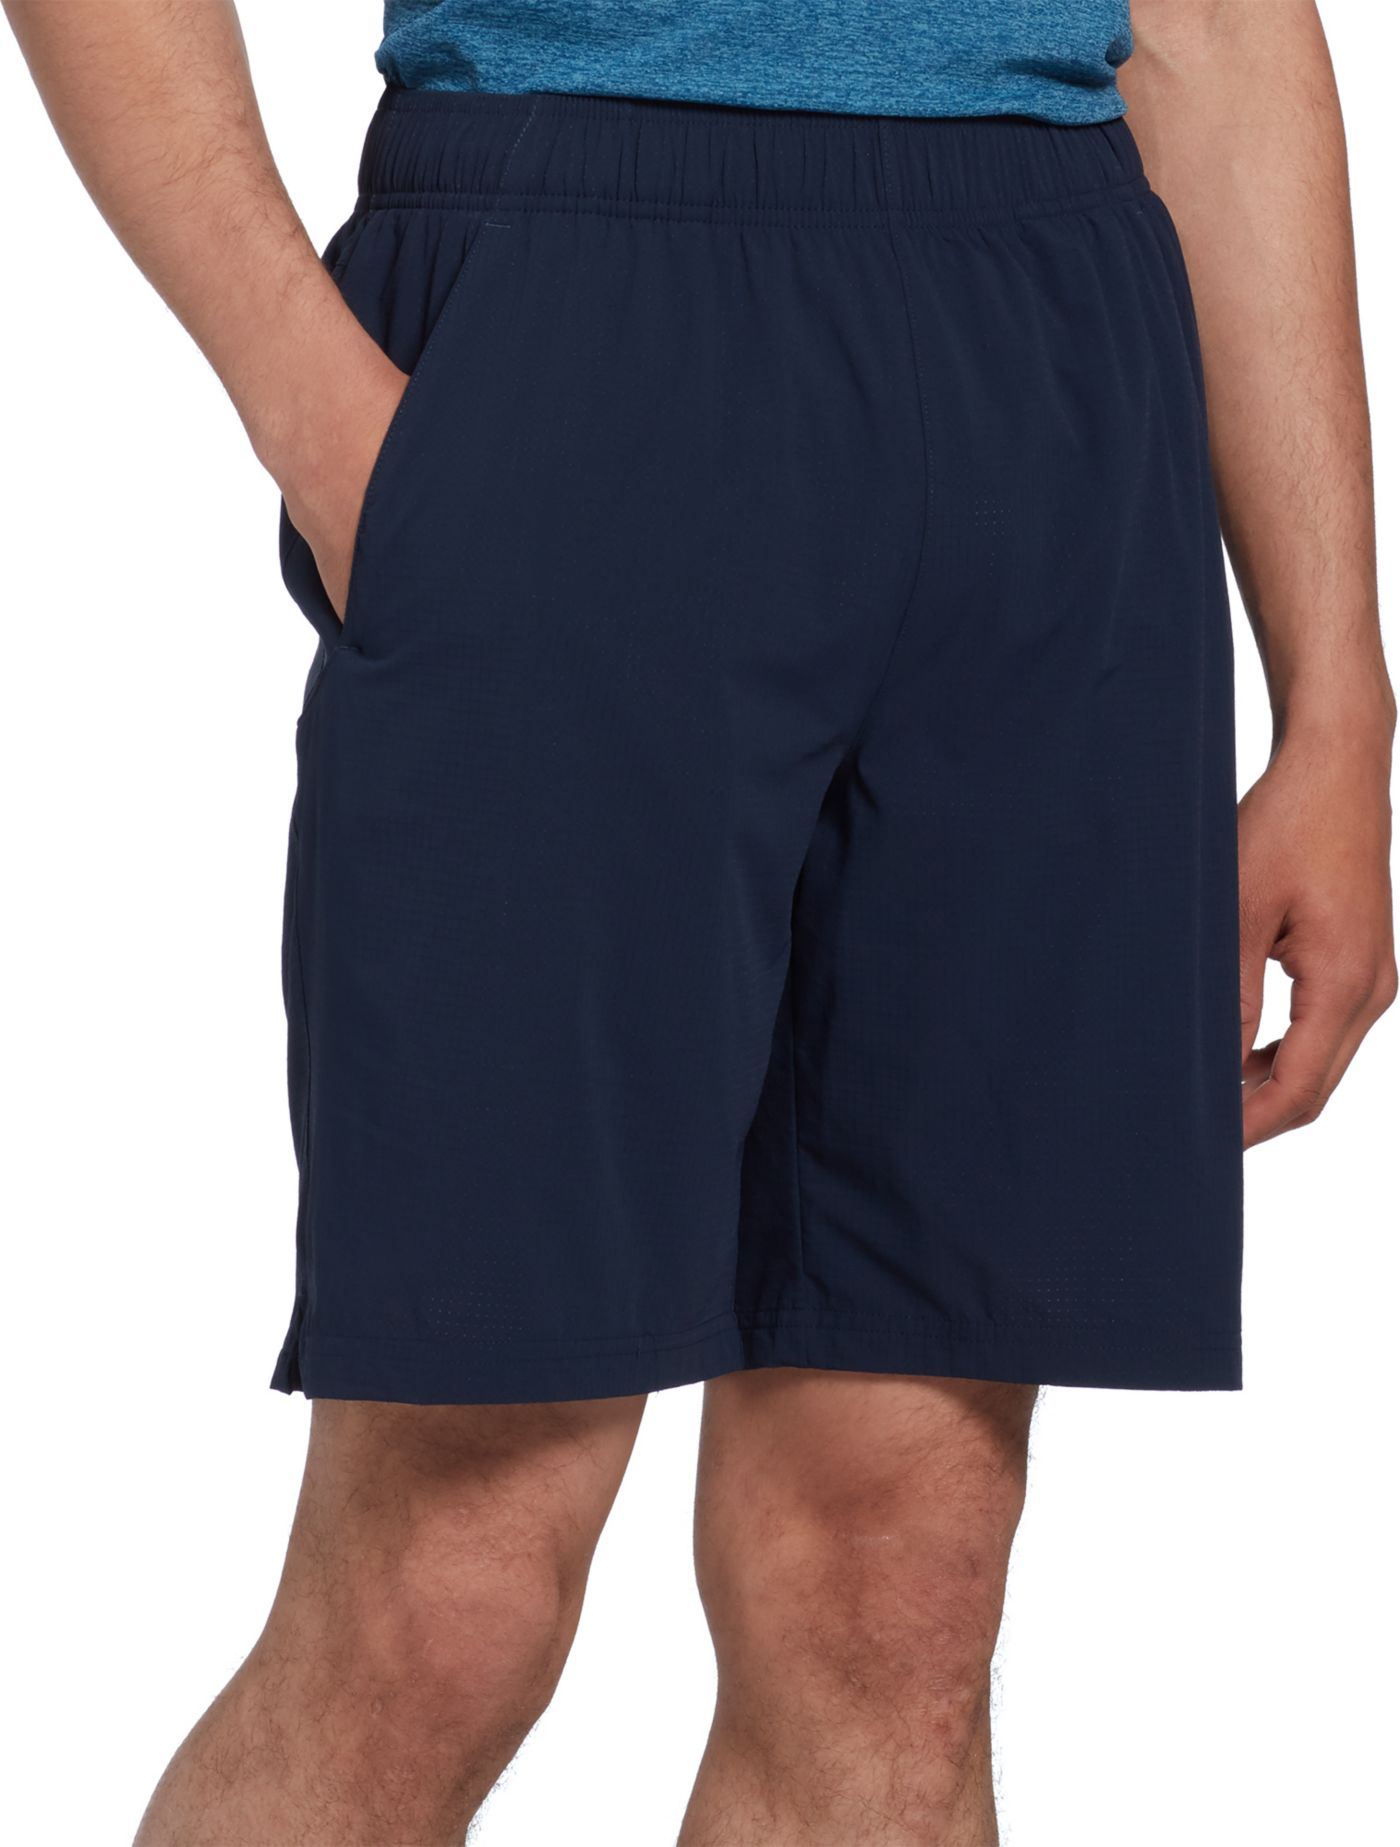 Prince Men's Woven Performance Tennis Shorts